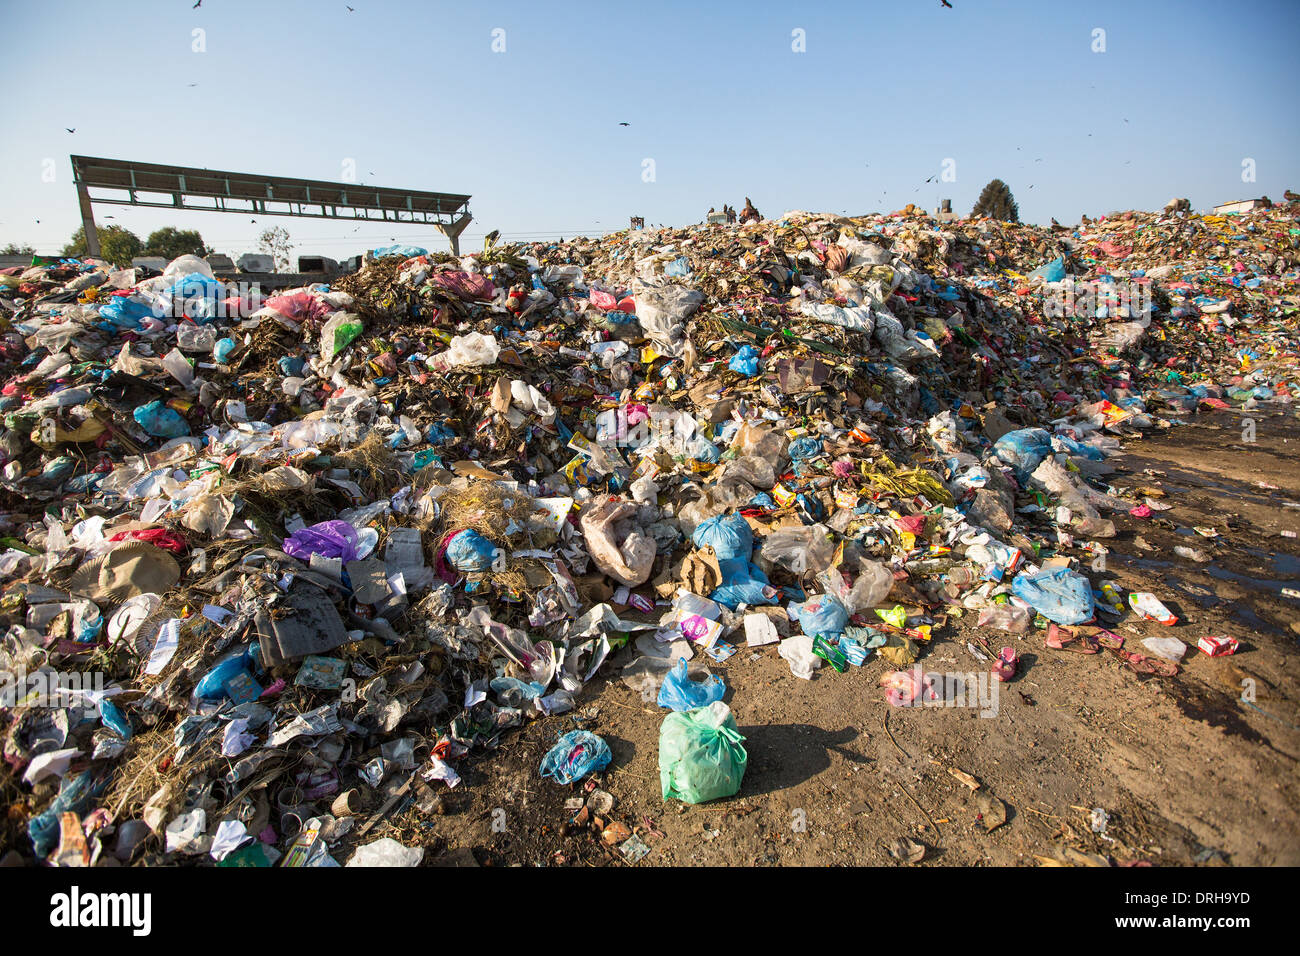 Food and pile of domestic garbage in landfill. - Stock Image